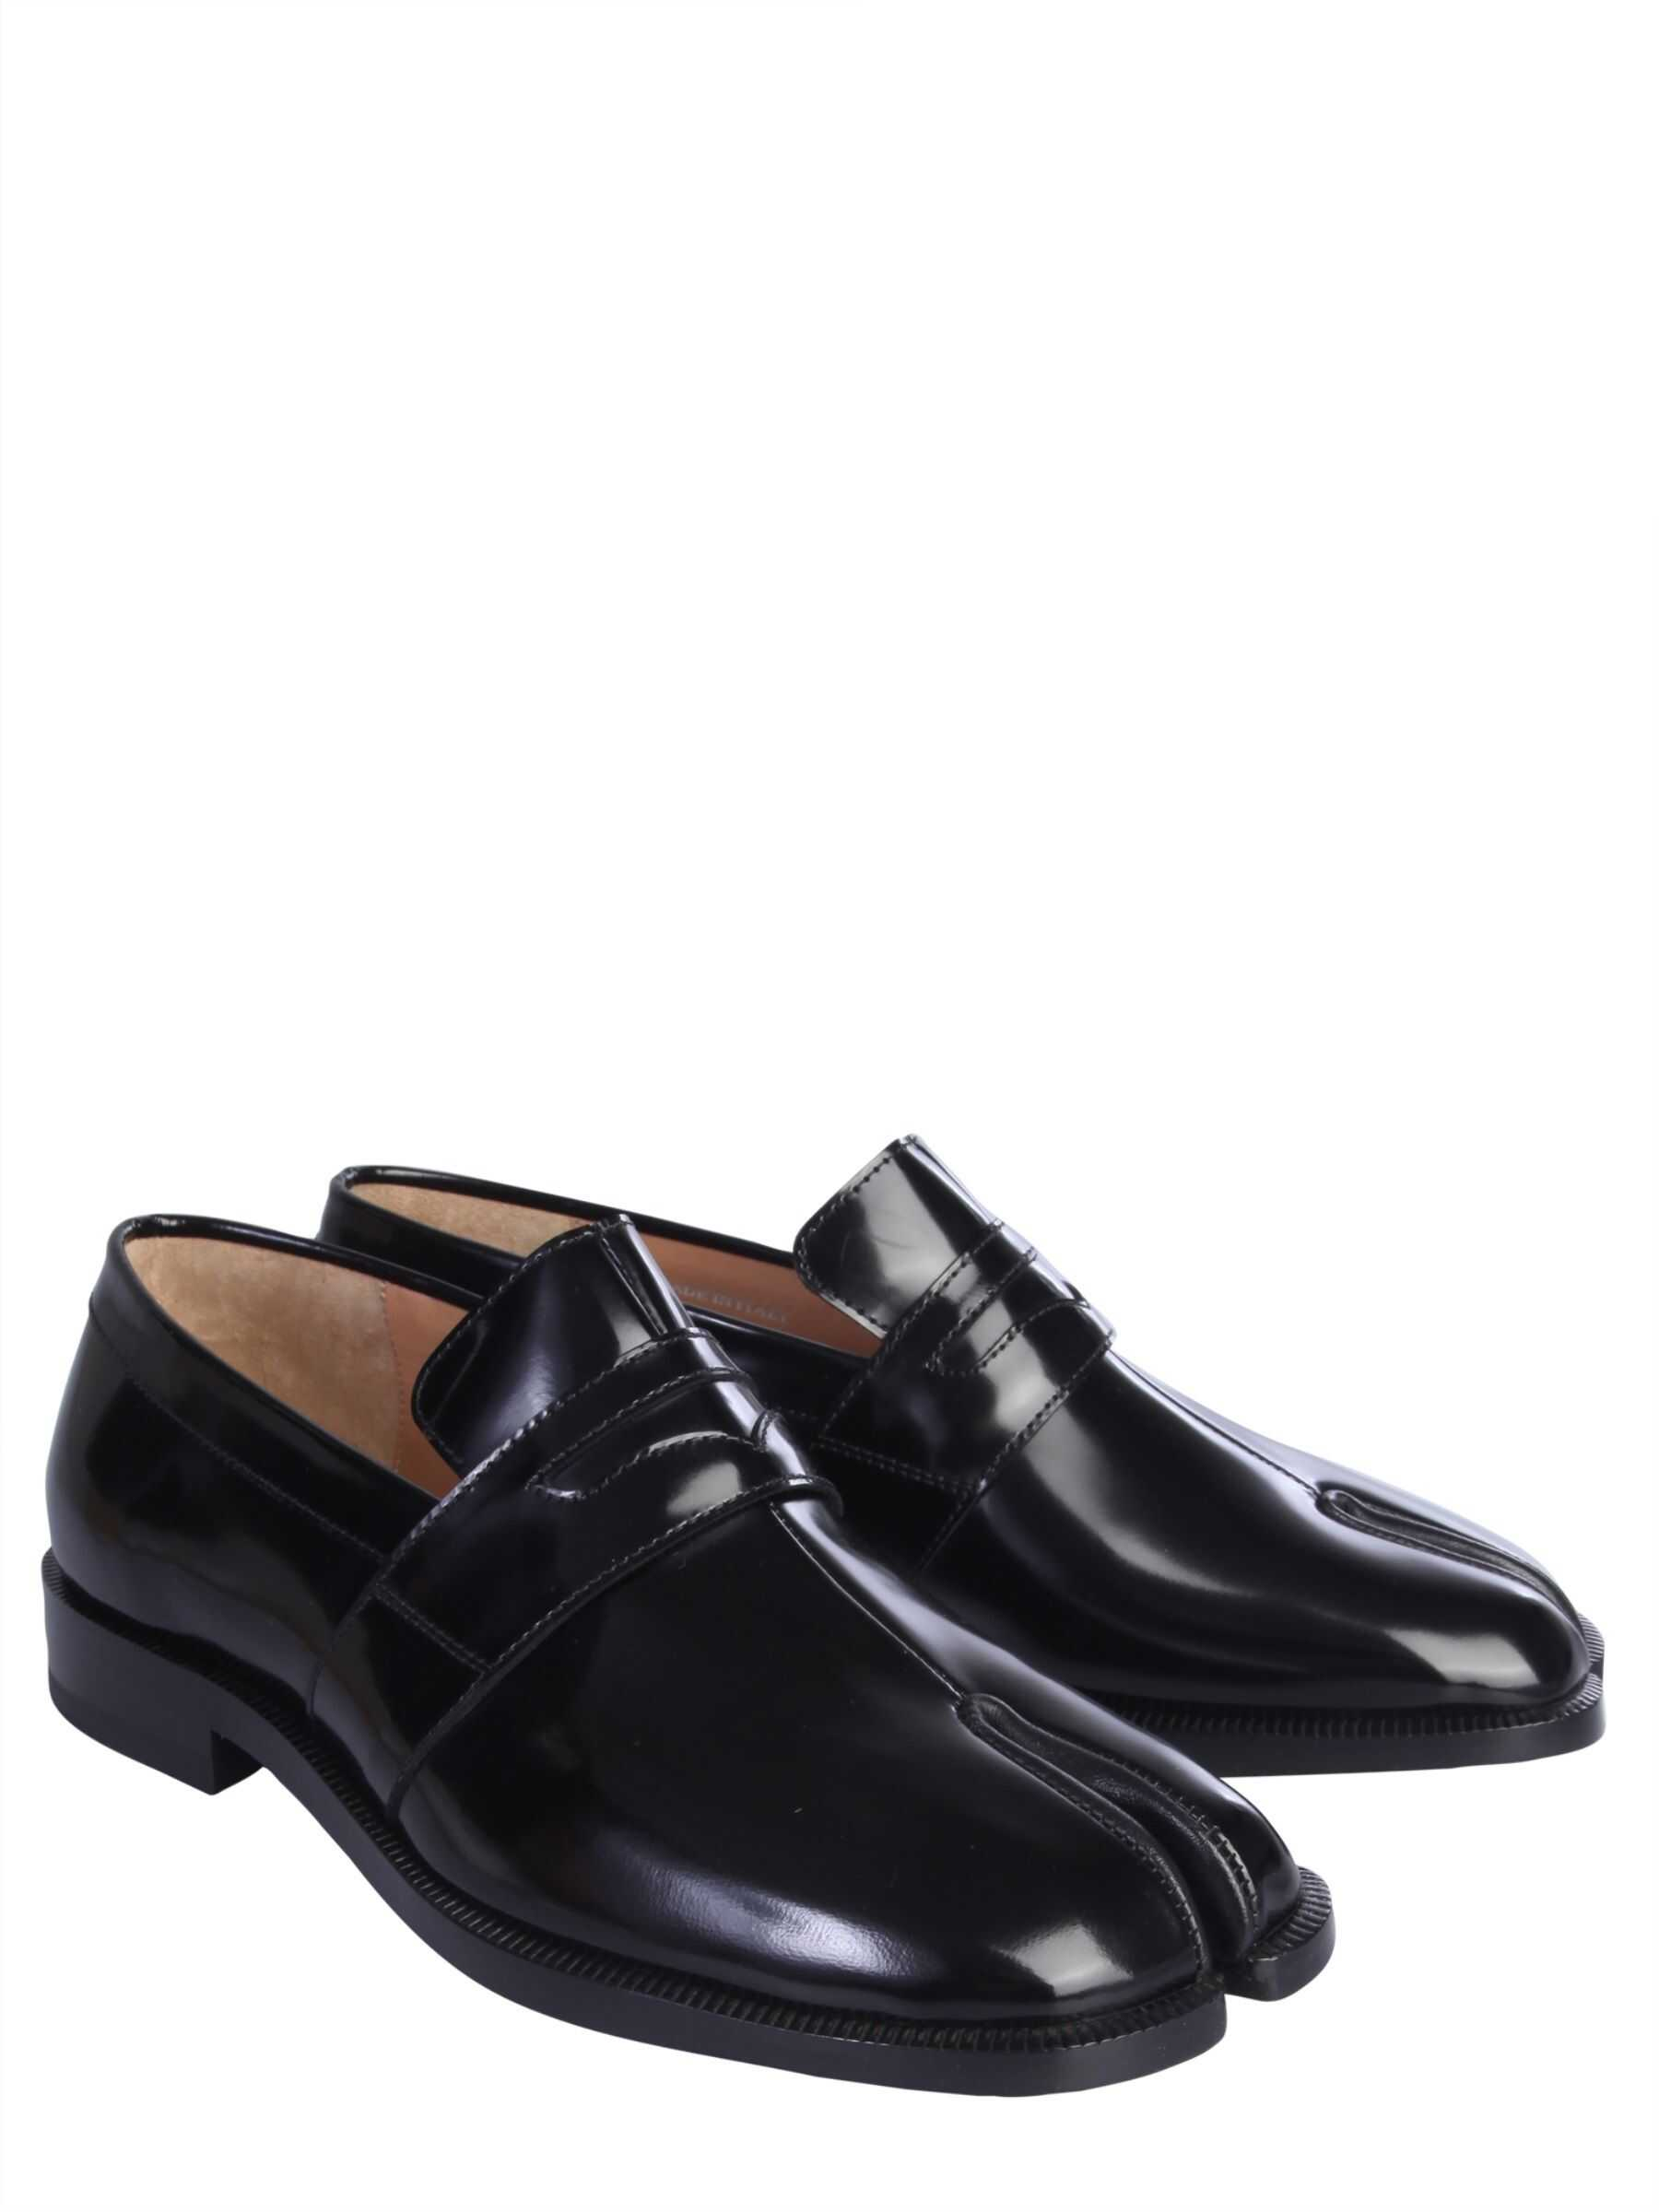 Maison Margiela Tabi Loafers BLACK